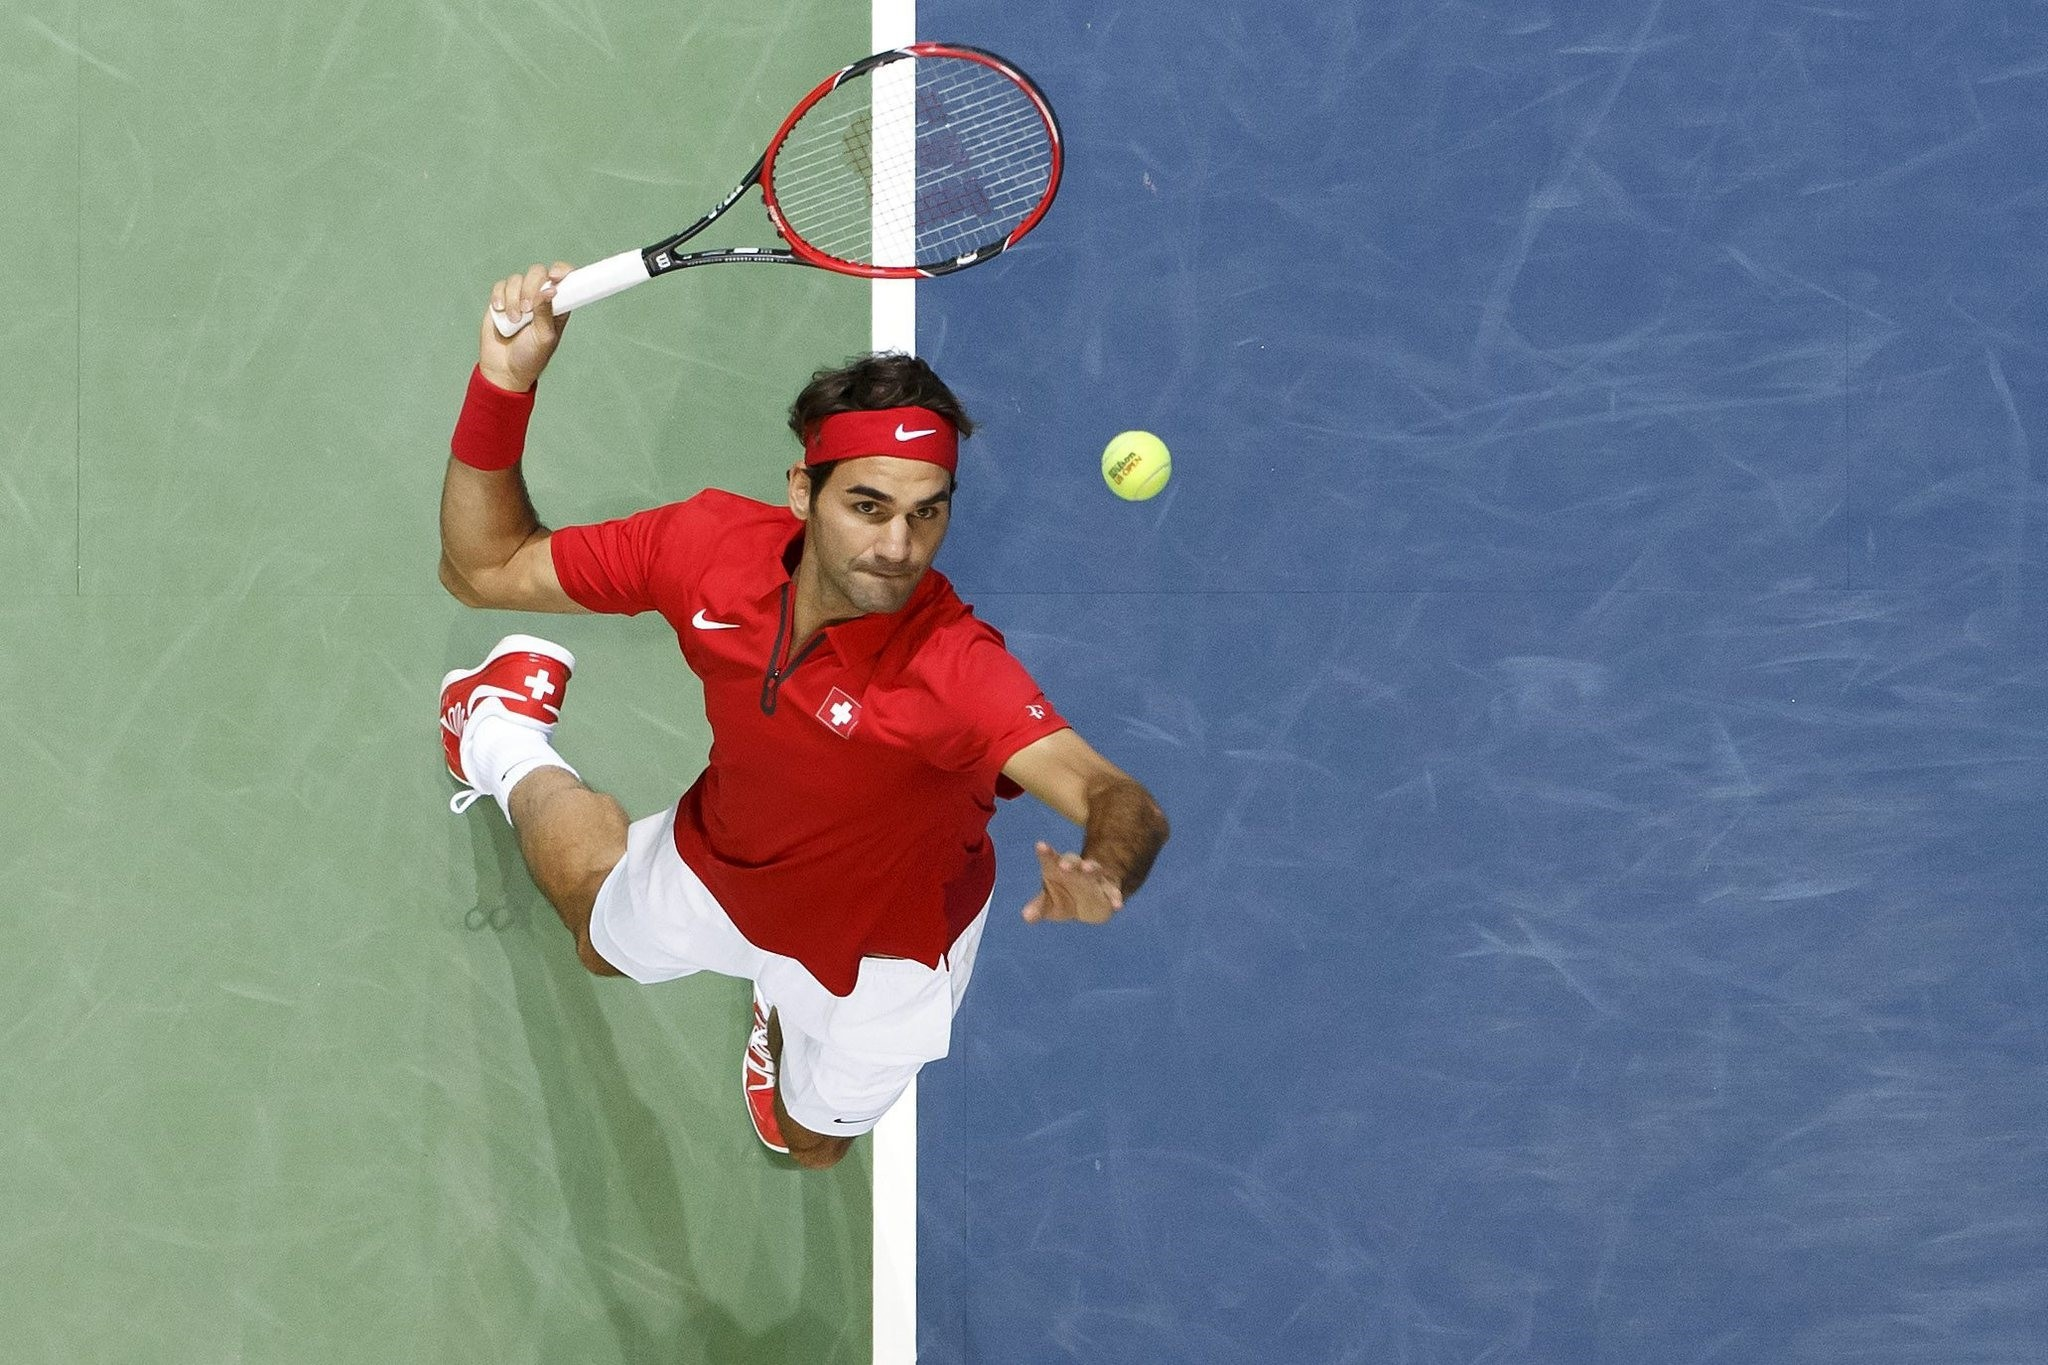 Roger Federer serves a ball to Thiemo De Bakker, of The Netherlands during the third single match of the Davis Cup. (AP Photo)